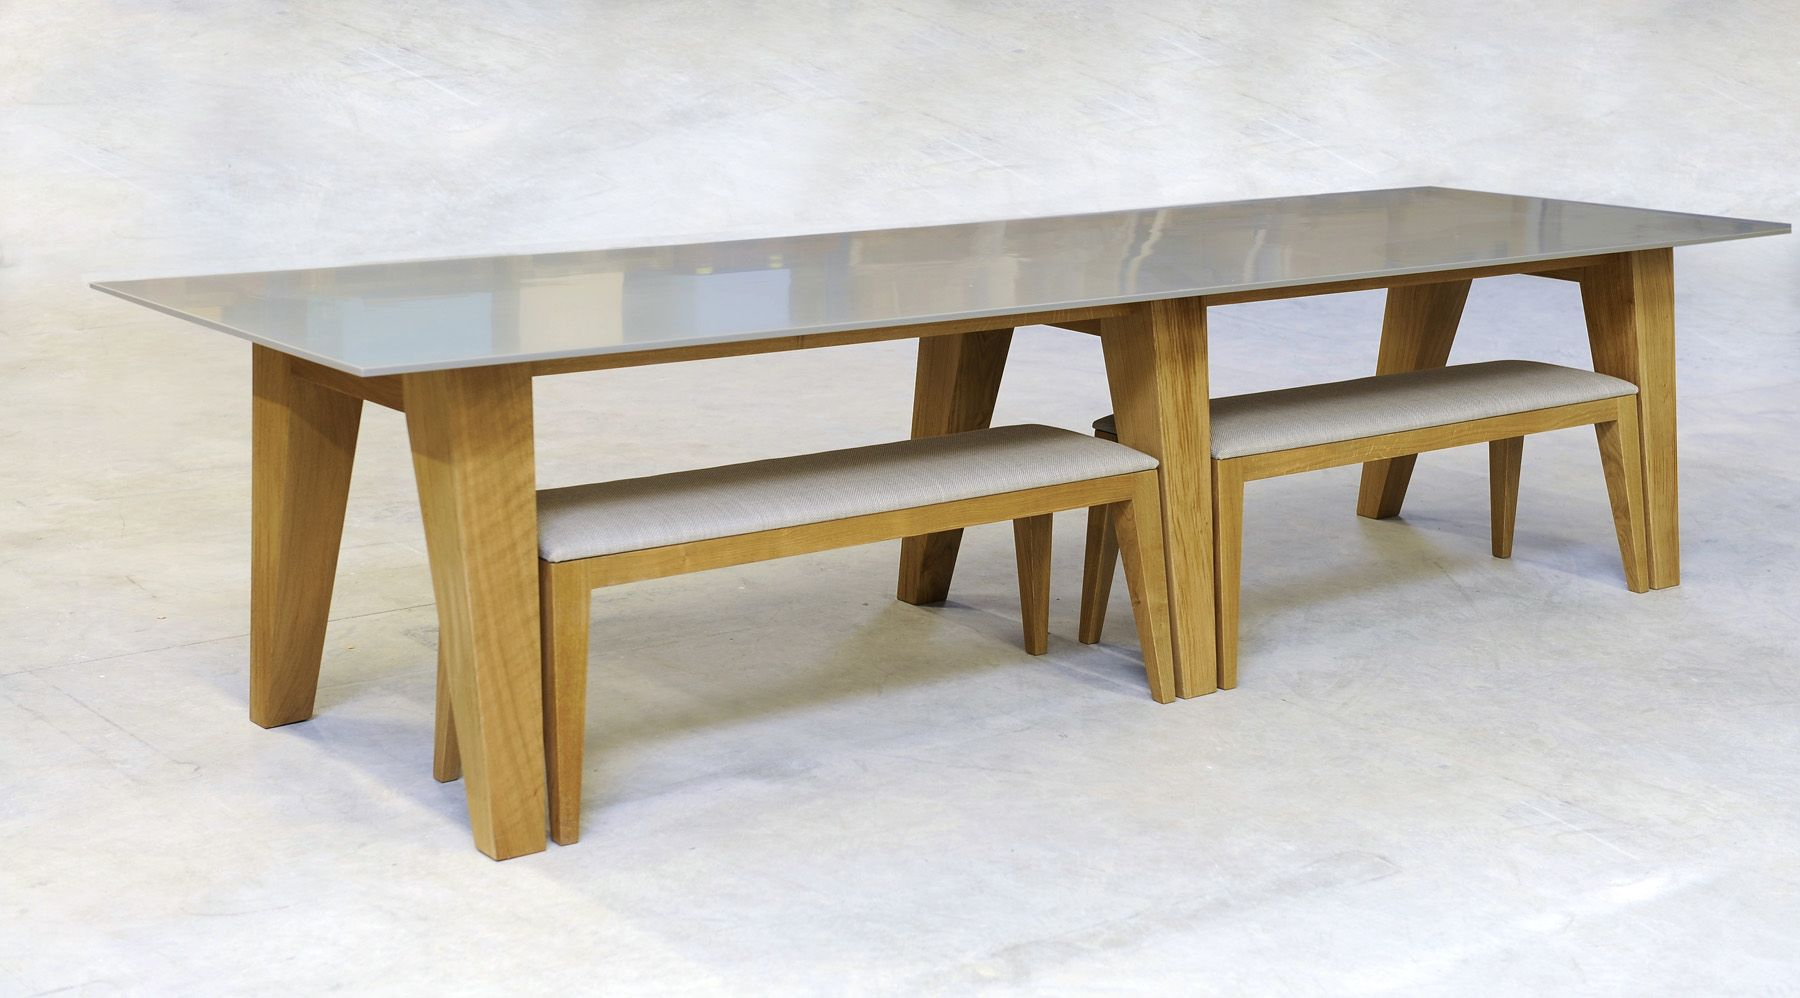 Table made of #HIMACS, produced by mjiila and designed by Olivier Moravik. #Furniture #Design.